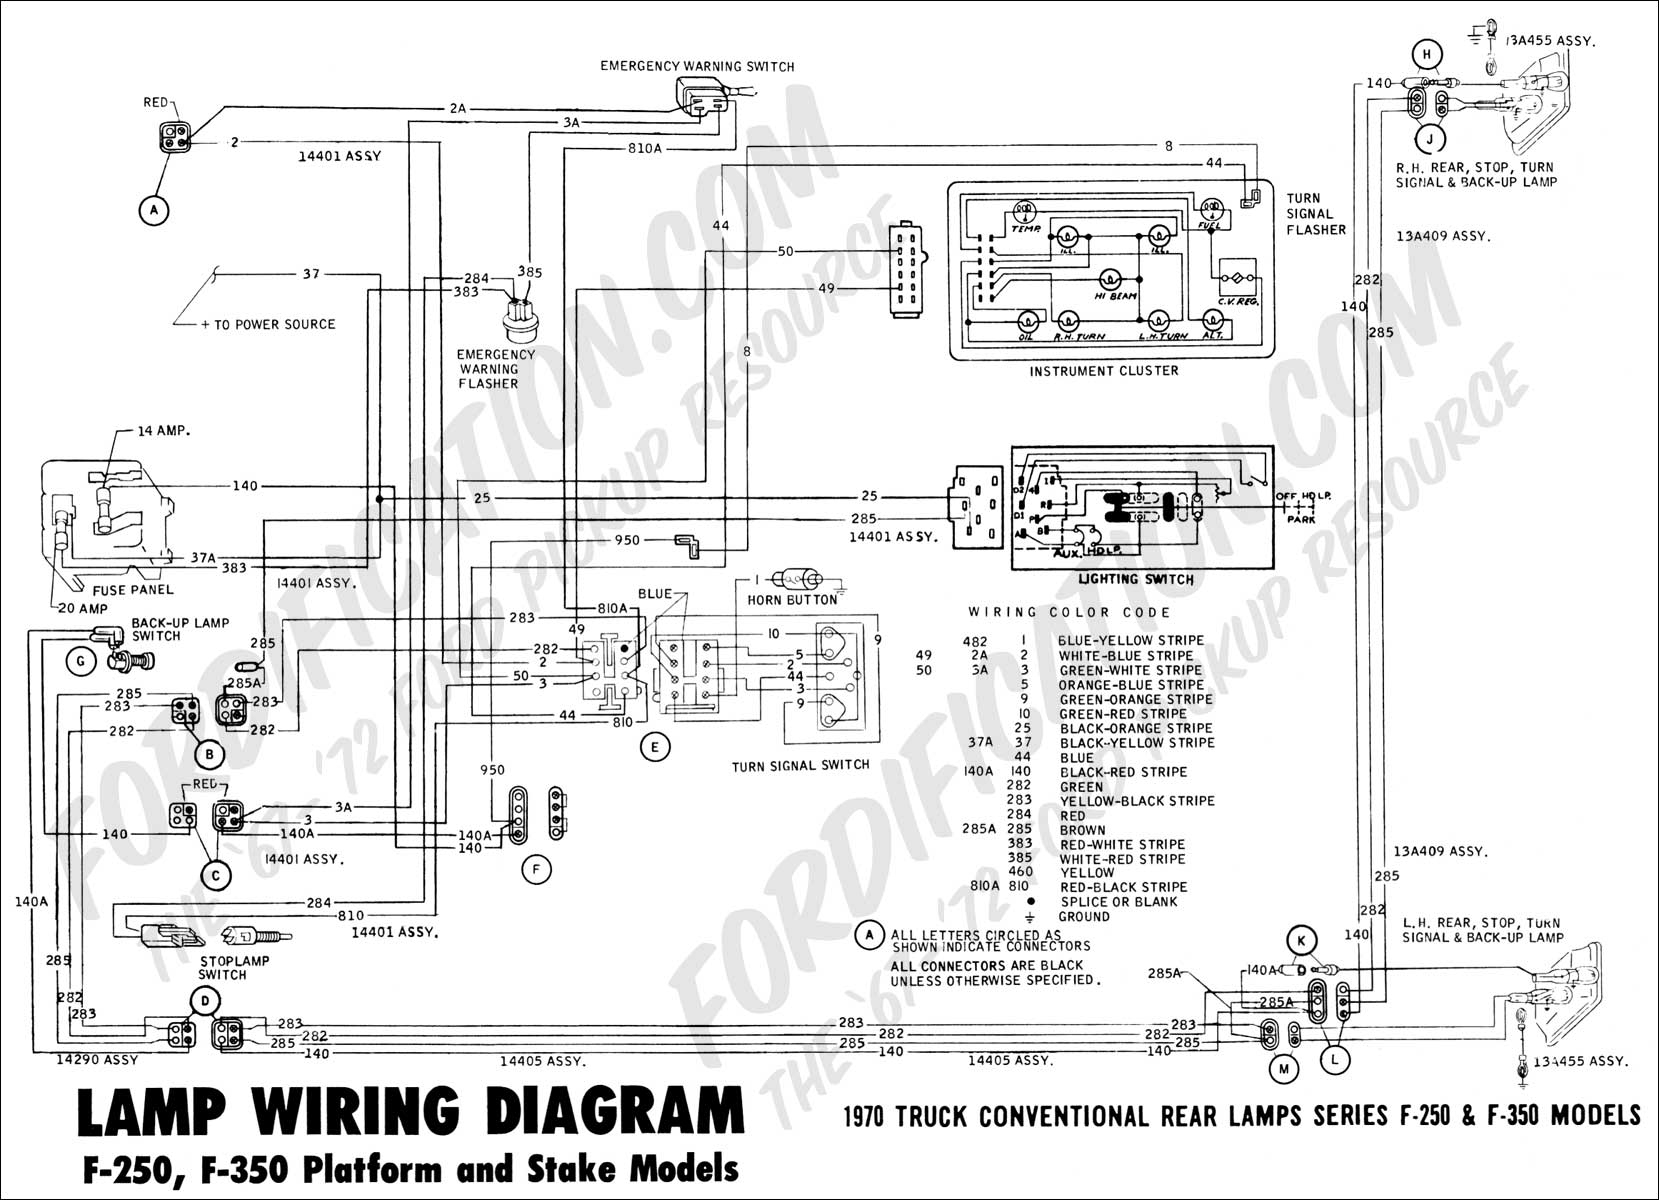 Ford Chassis Tail Light Wiring | Wiring Diagram - 2001 Ford F150 Trailer Wiring Diagram